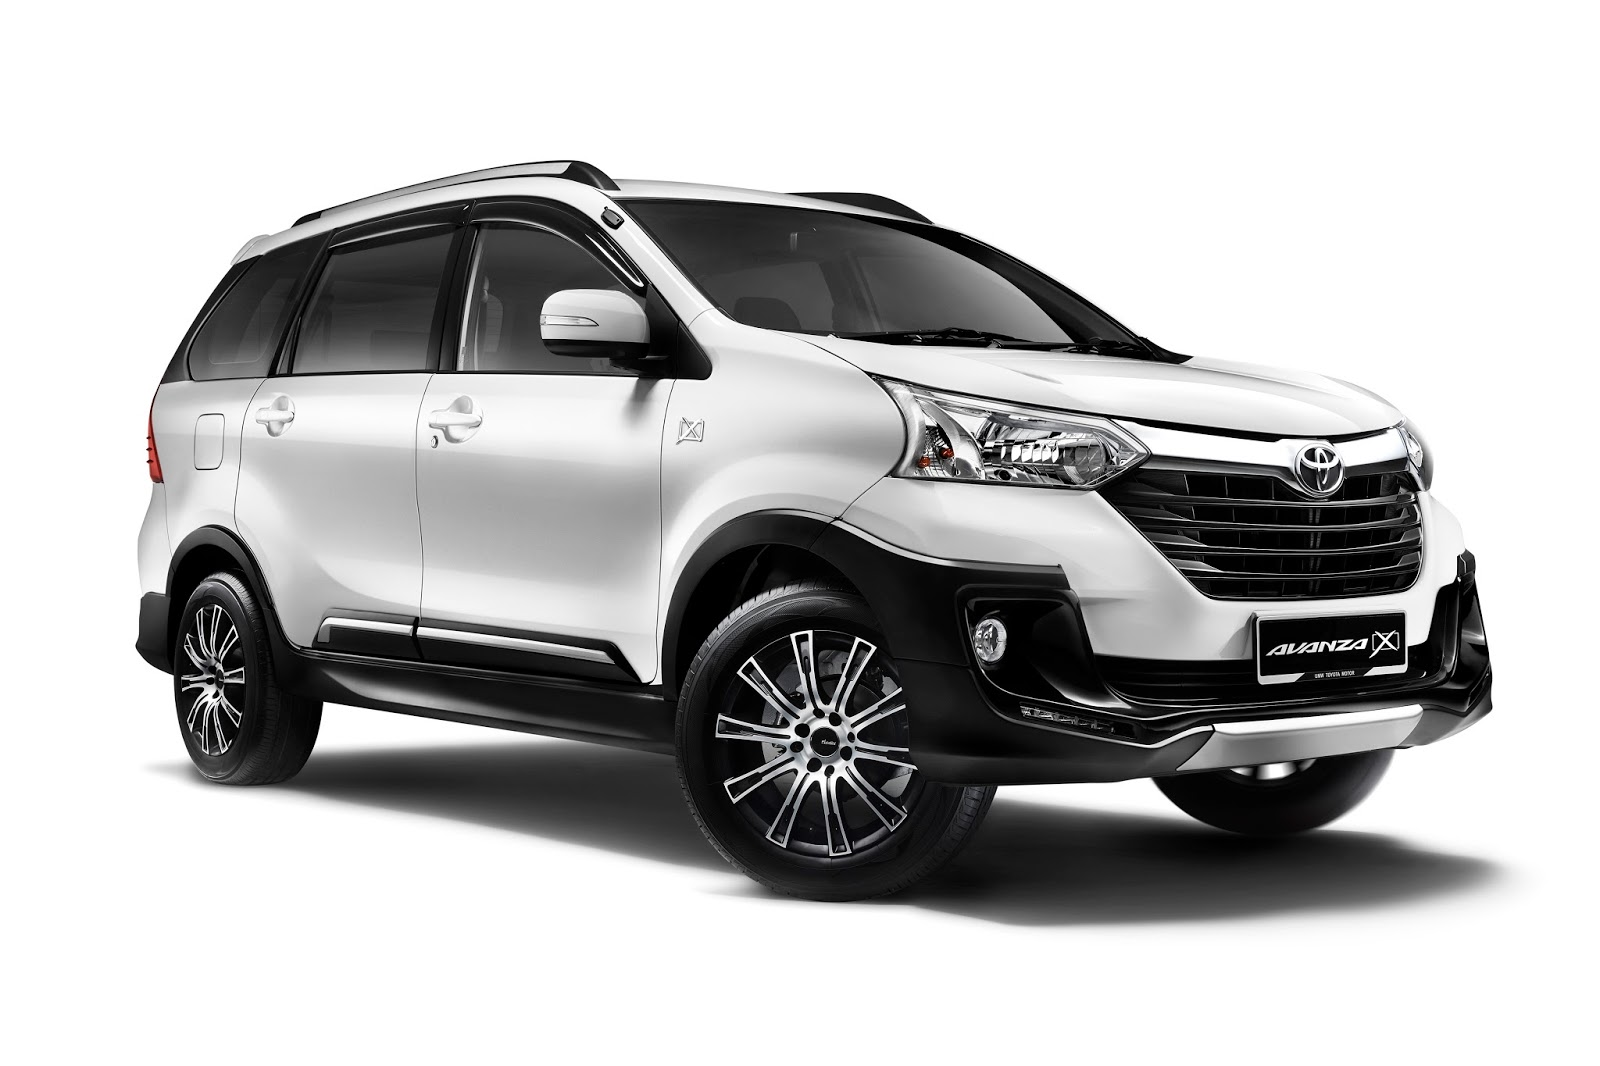 Car Transport Reviews >> Motoring-Malaysia: UMW Toyota Launches Another Avanza Variant - The Toyota Avanza 1.5X